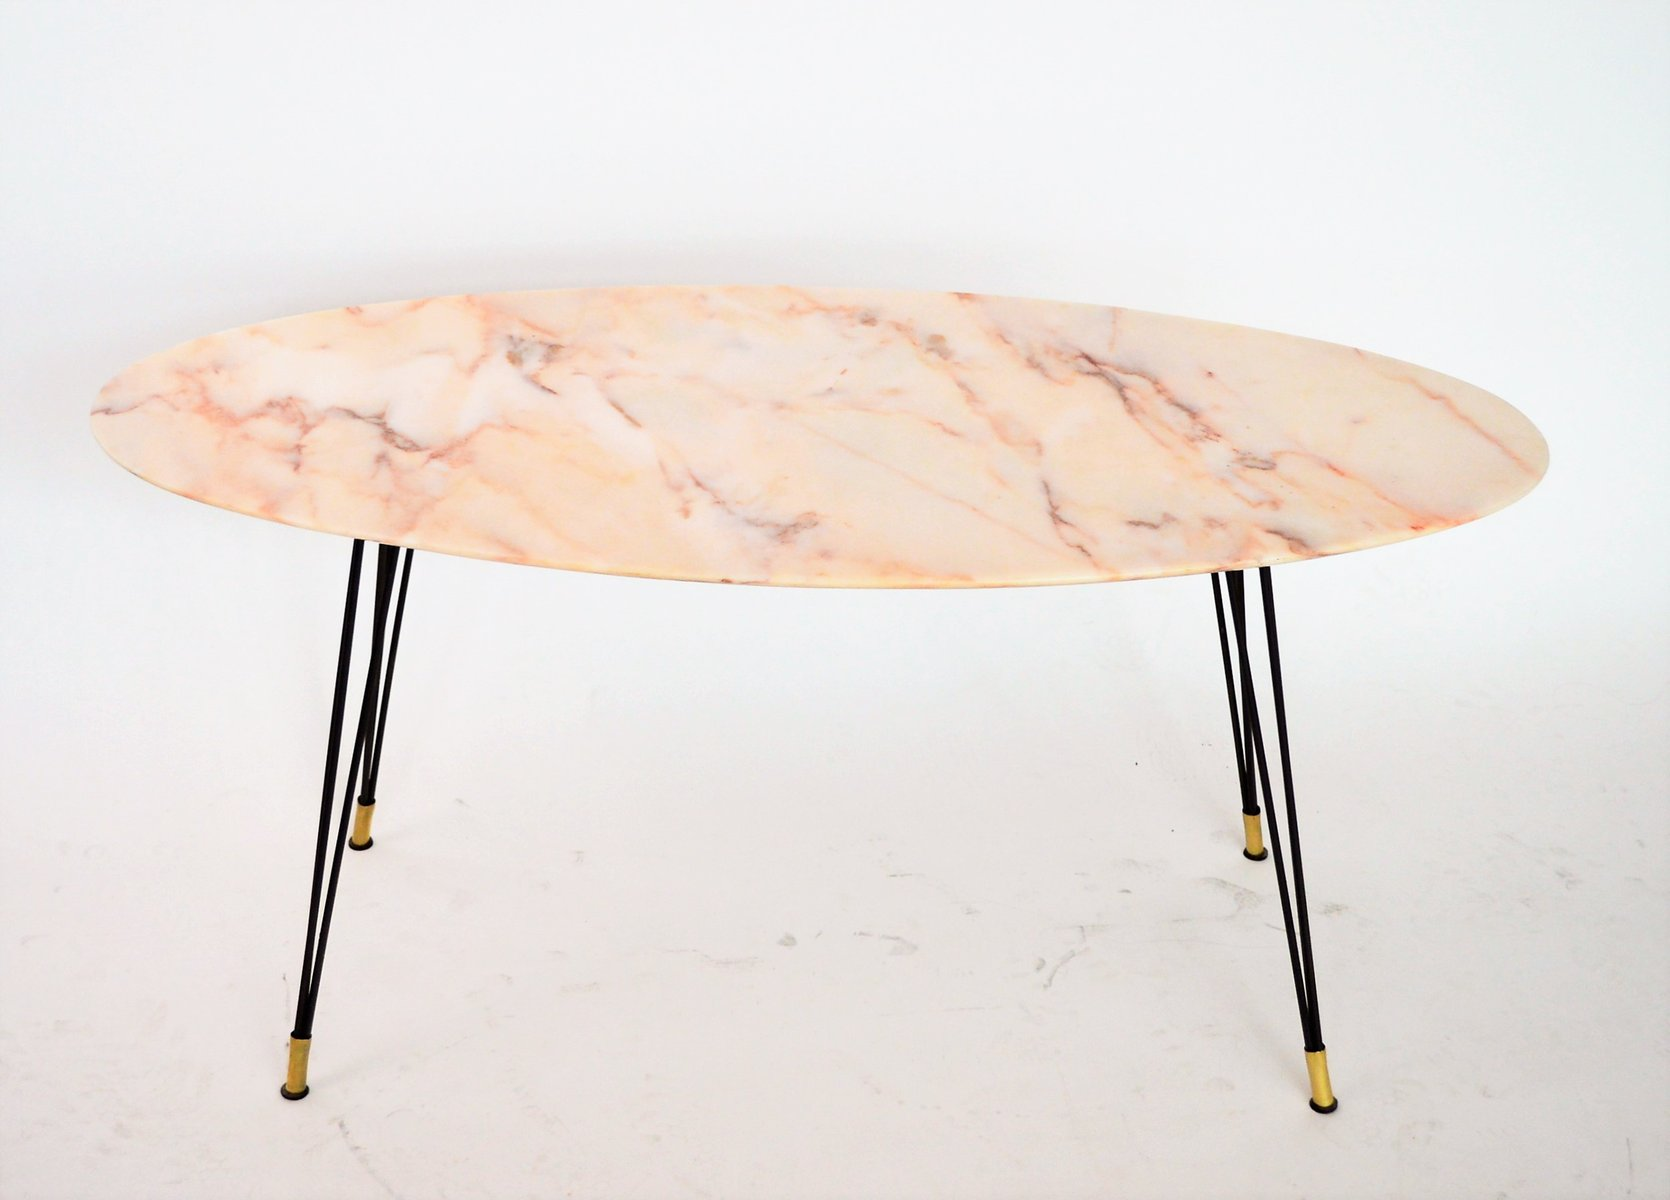 Oval Italian Marble Coffee Table 1950s for sale at Pamono